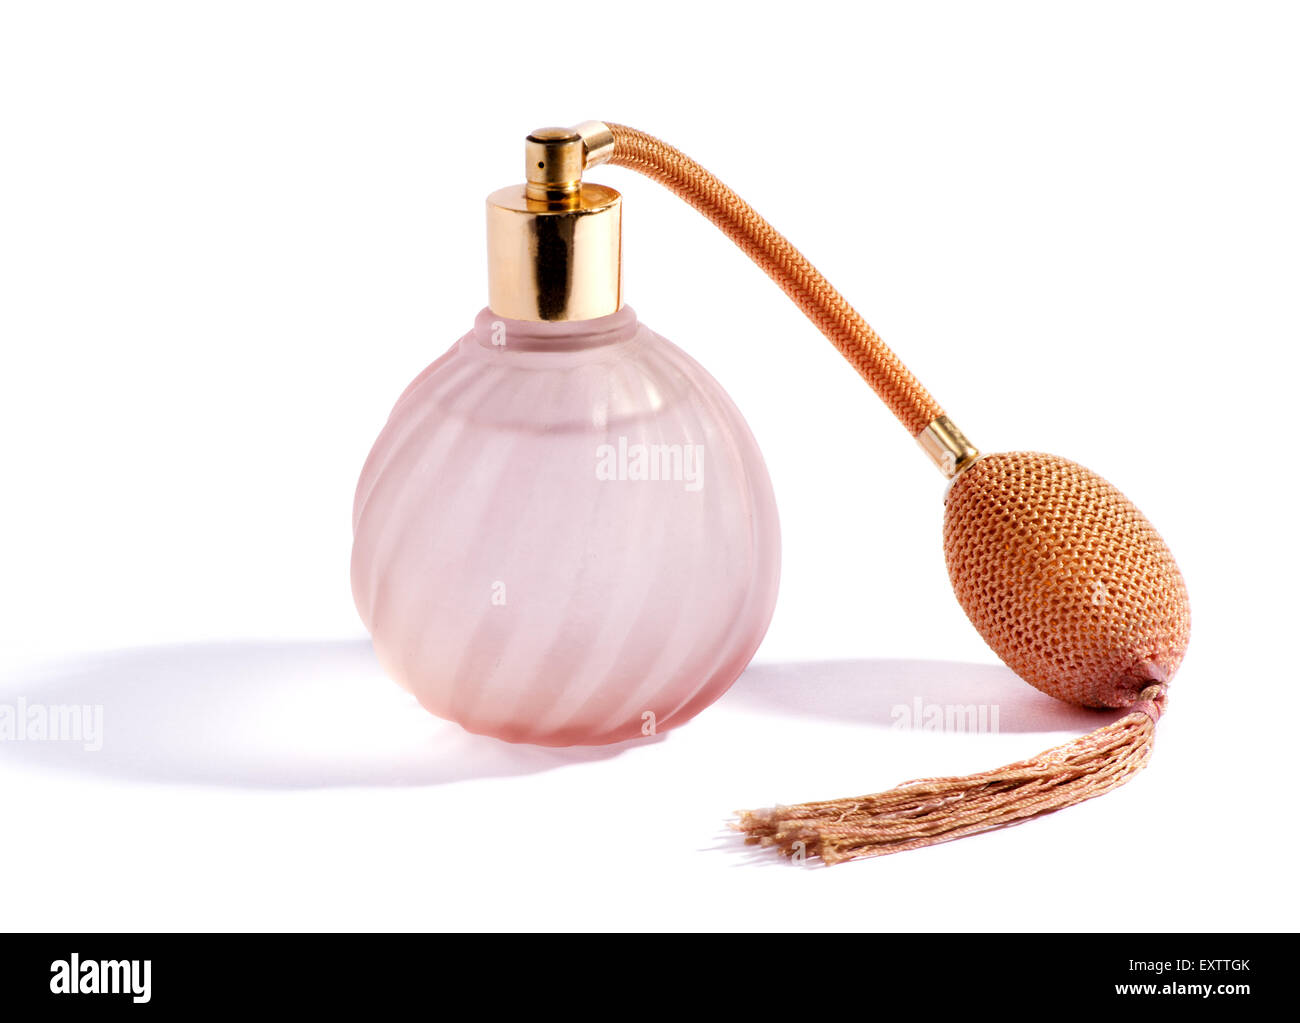 Swirling decorative glass pink perfume bottle - Stock Image